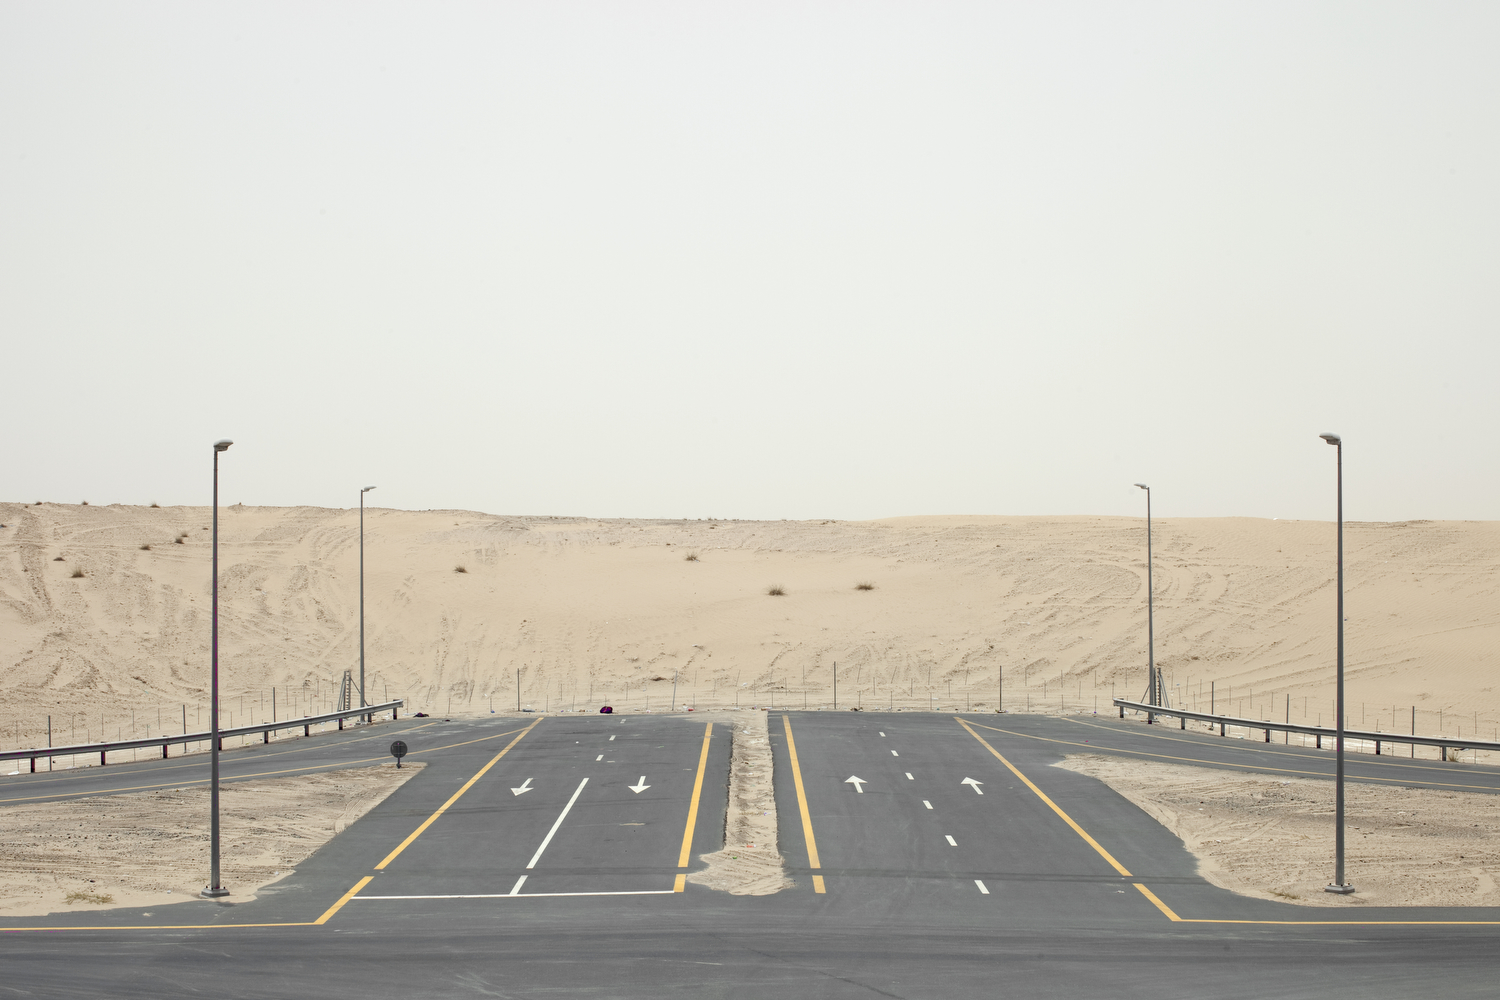 A road on the outskirts of Dubai.